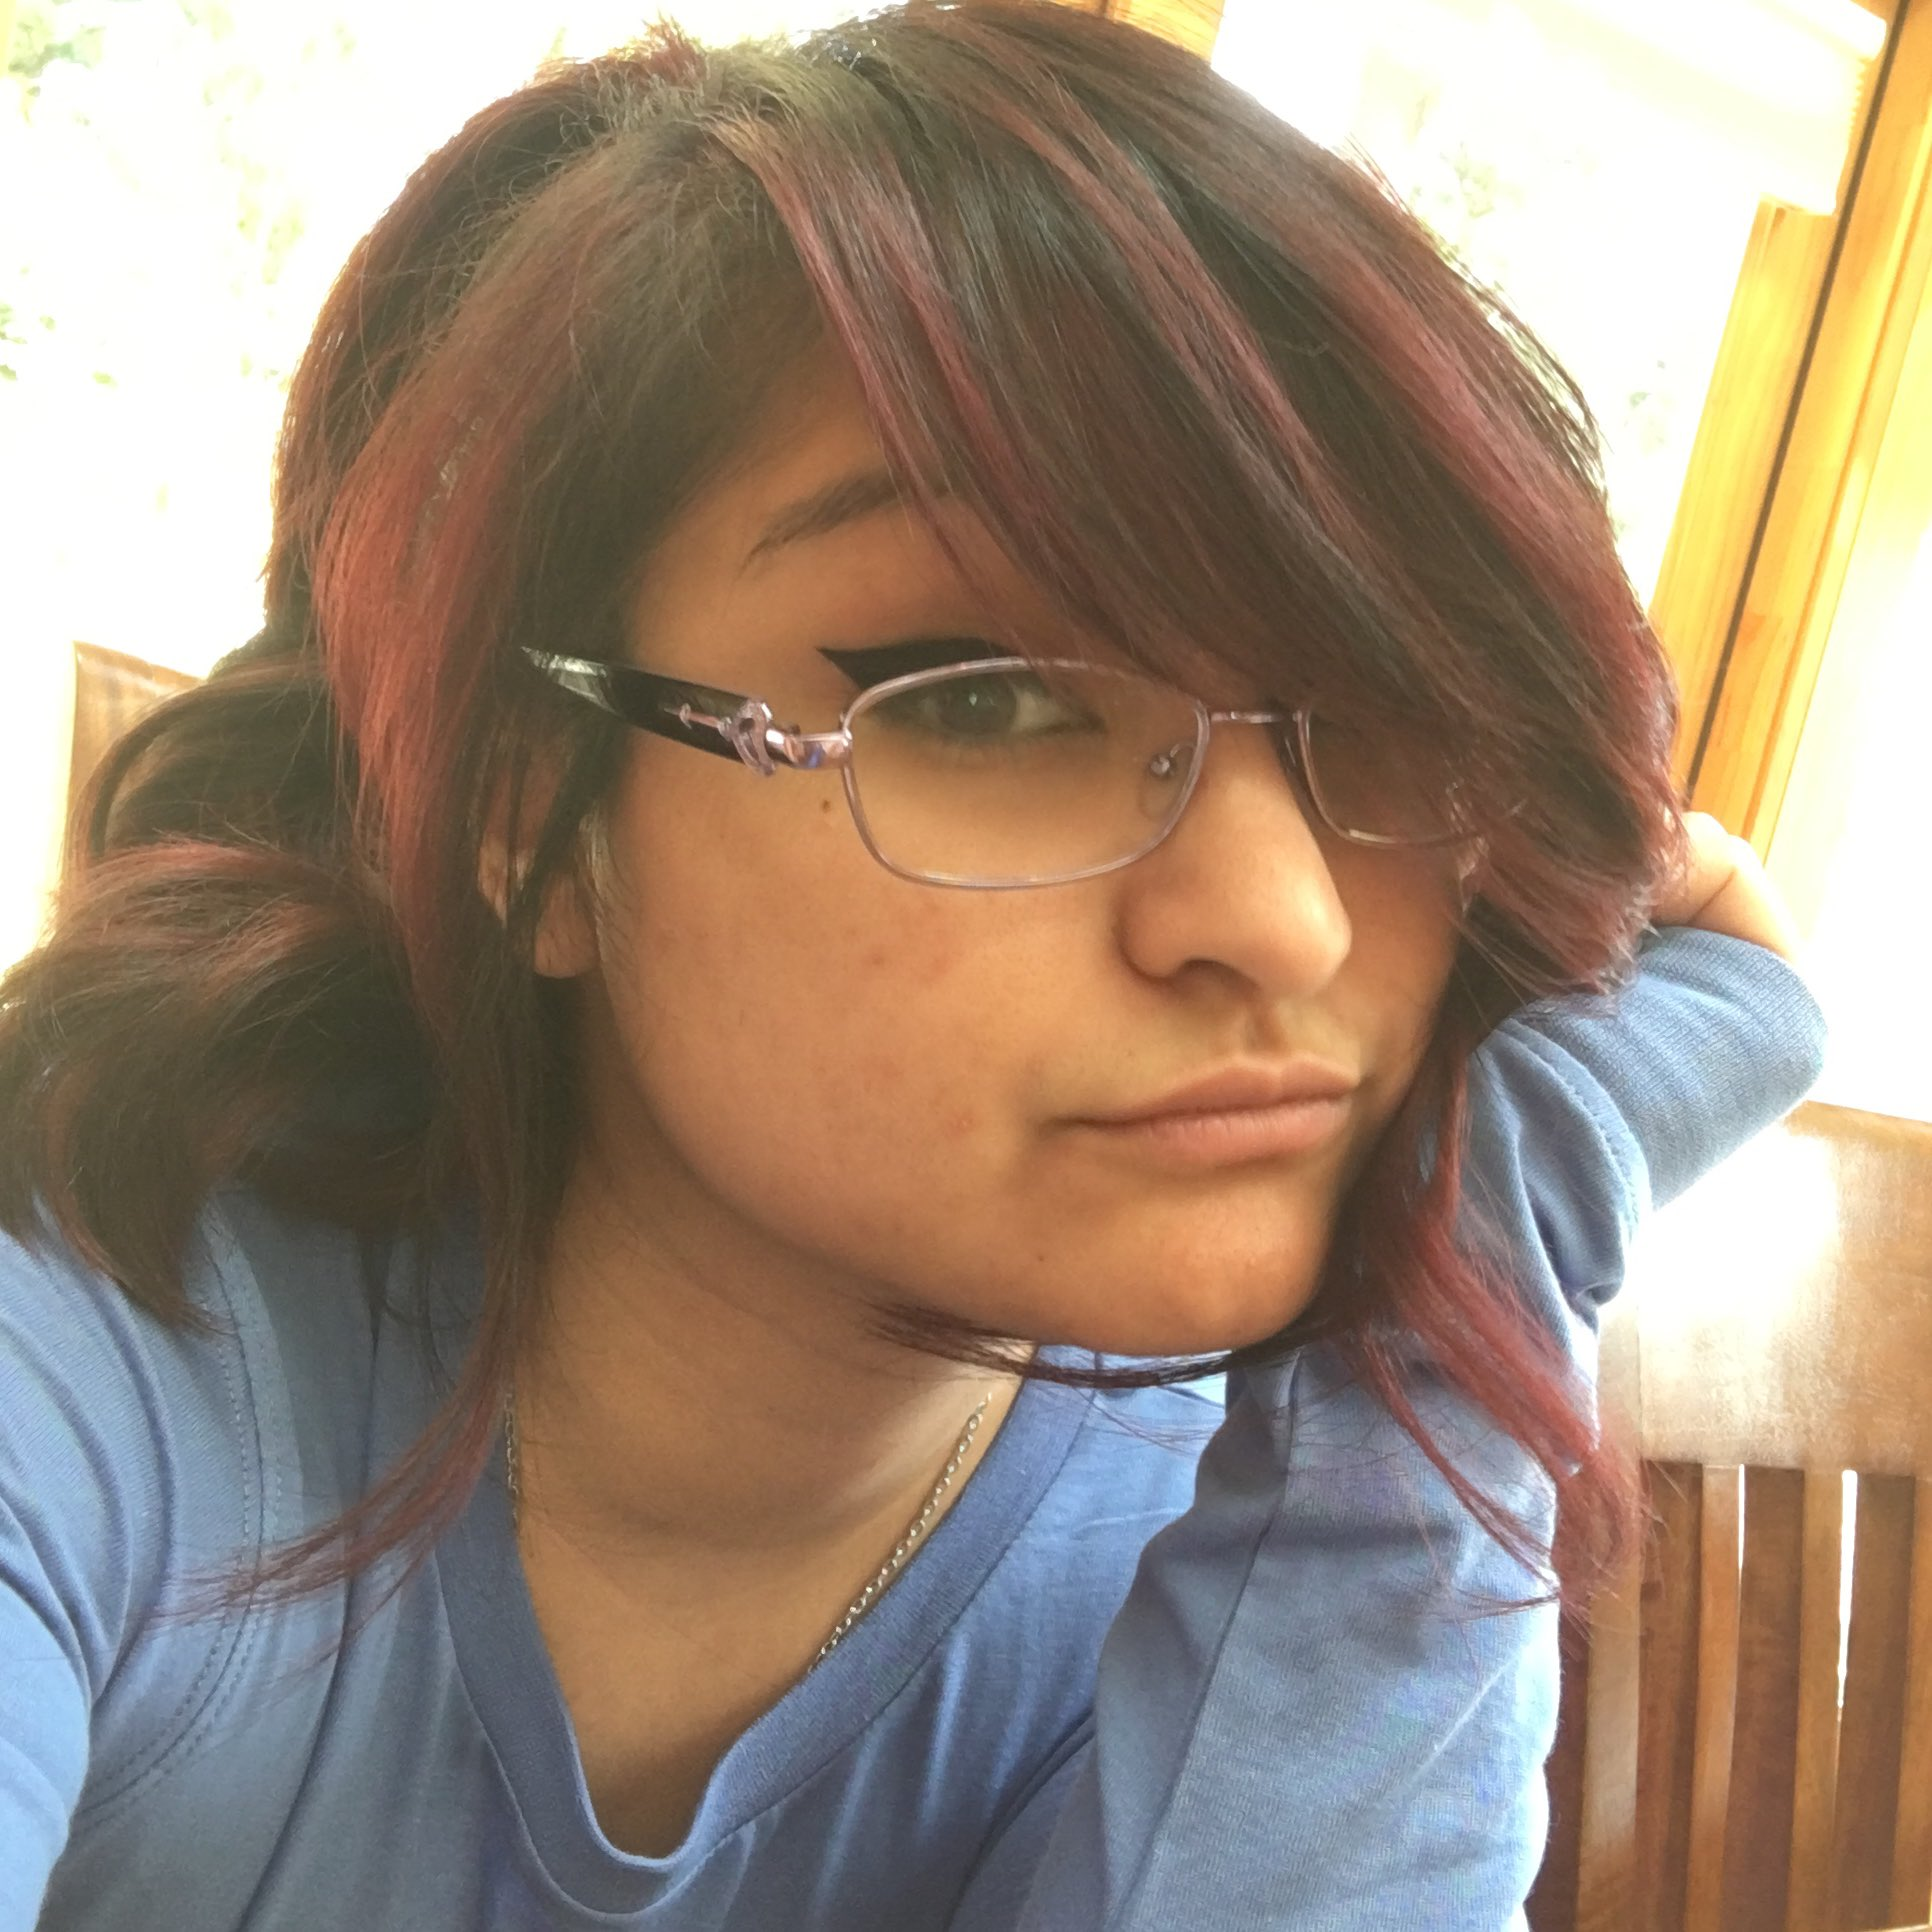 Aphmau On Twitter Quot In Darker Lighting Pinned Up